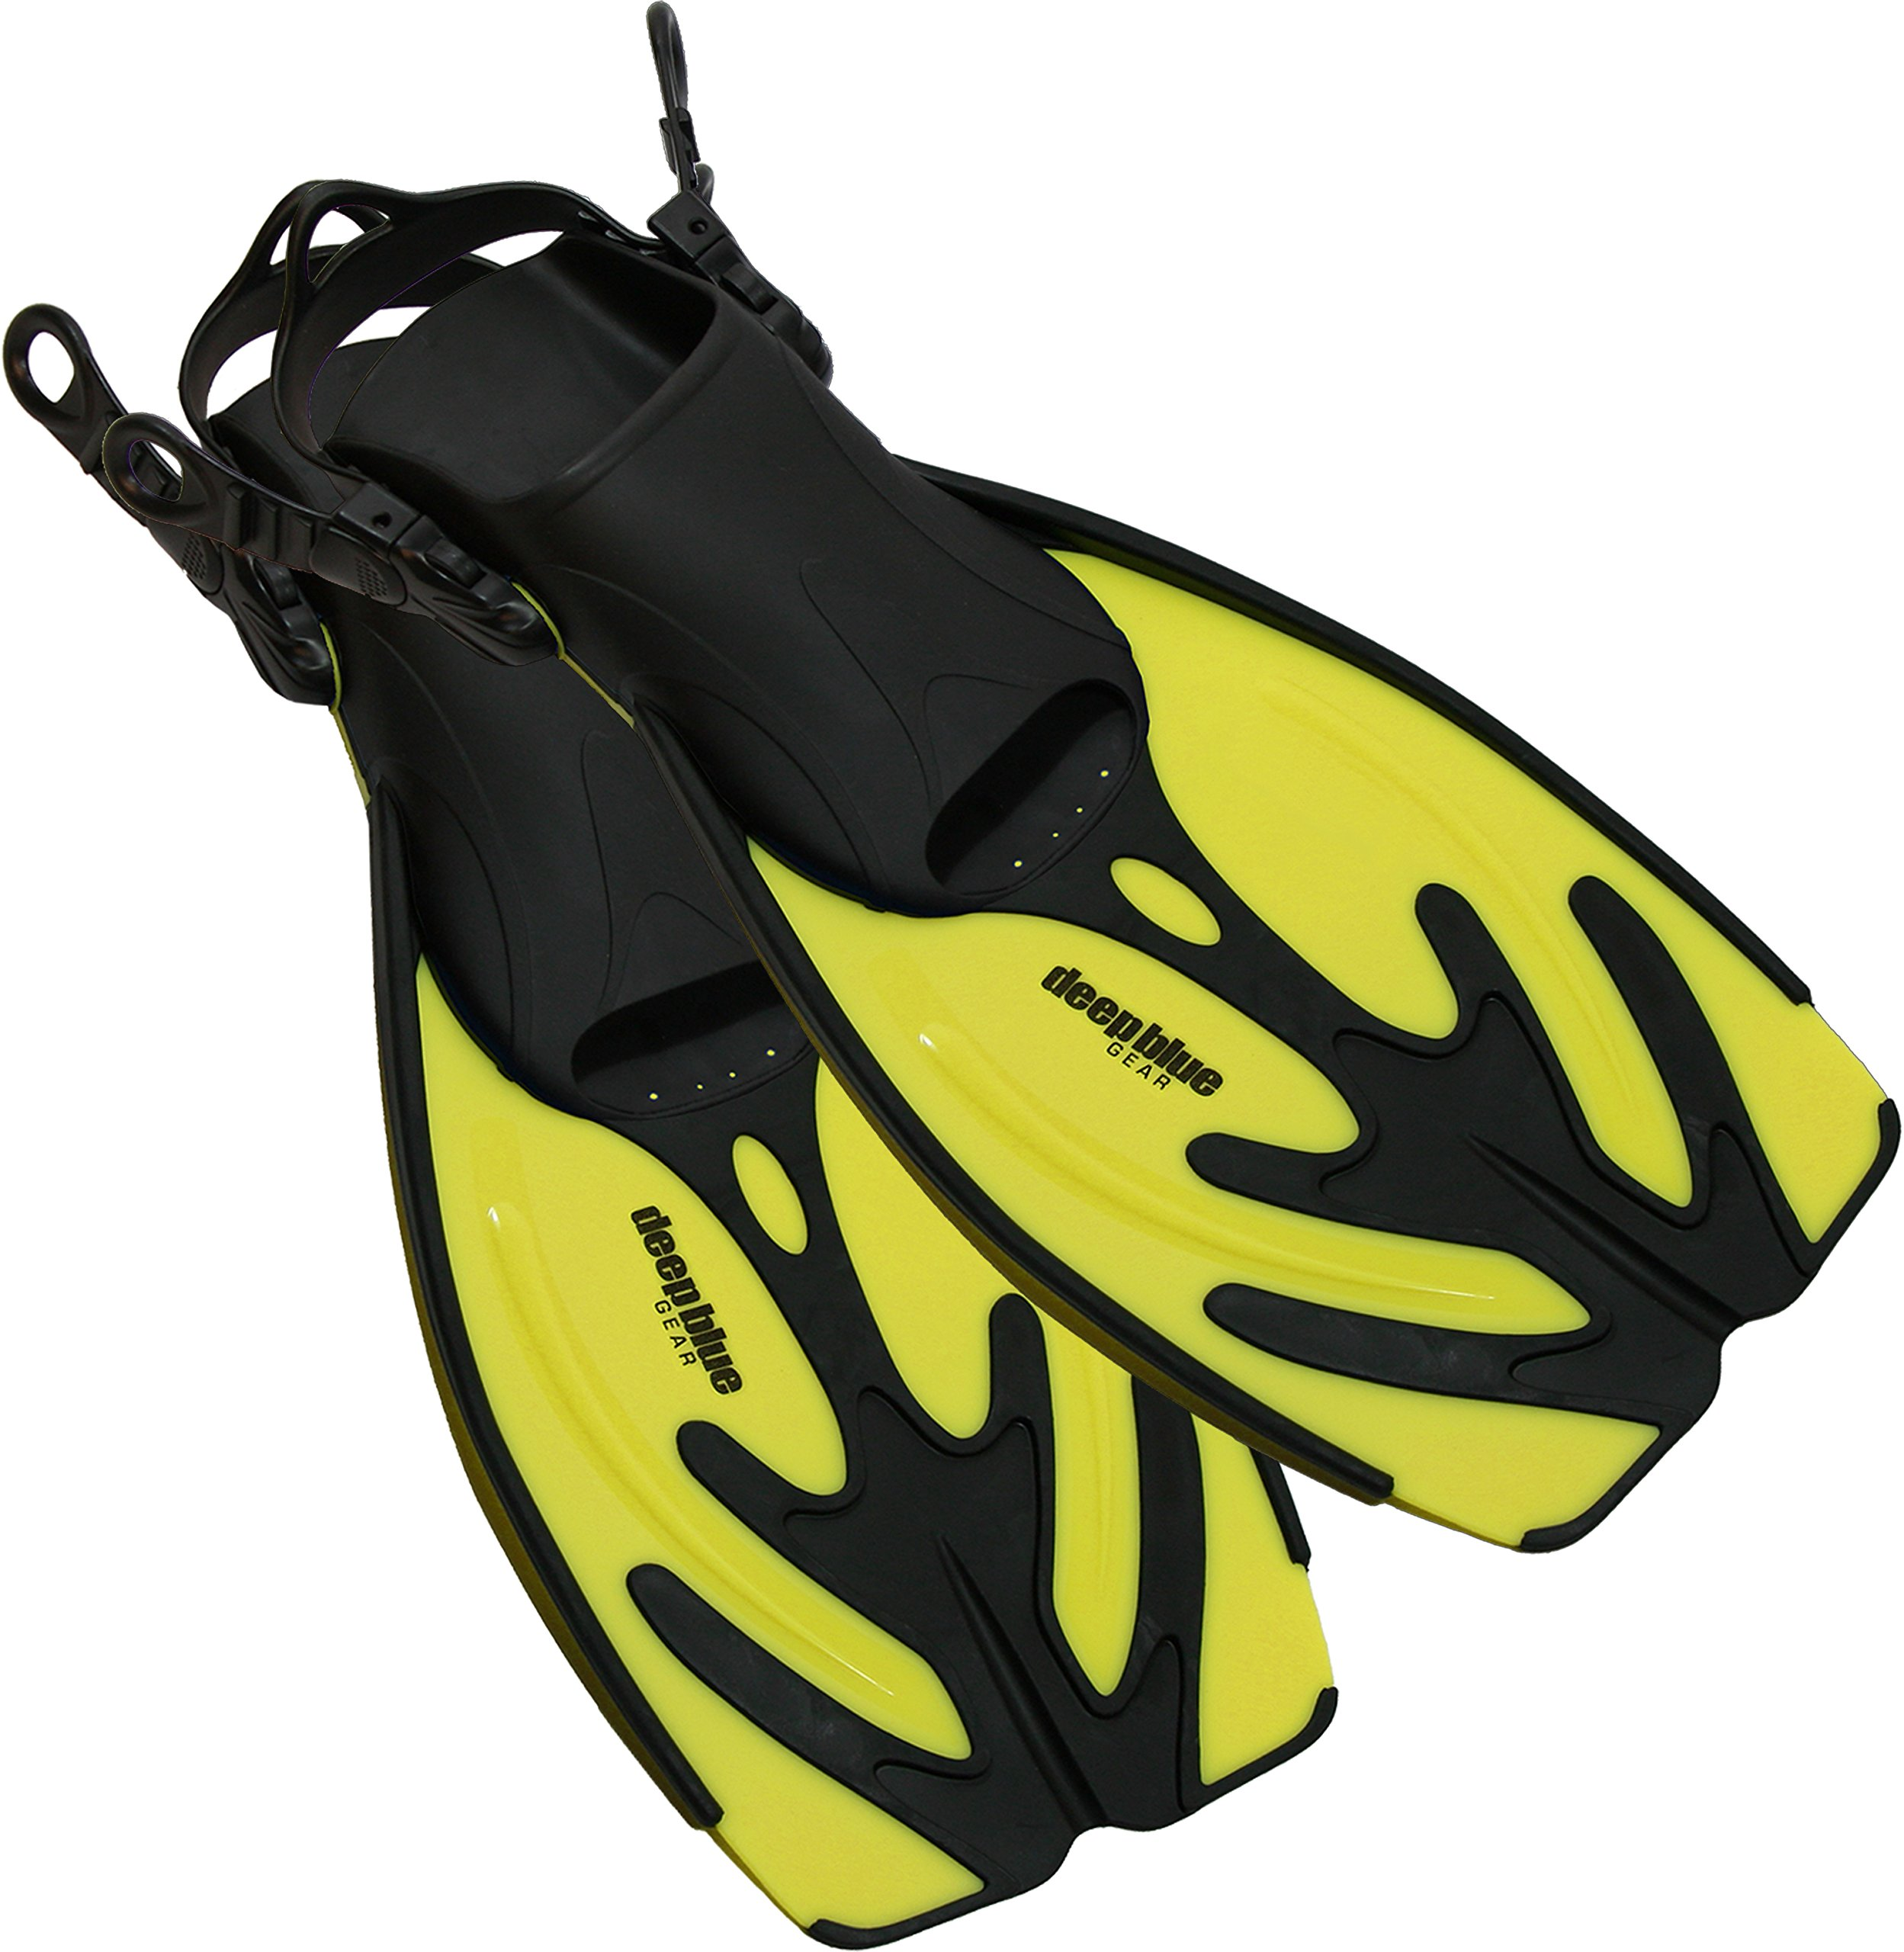 Deep Blue Gear Current Fins for Diving, Snorkeling, and Swim, Kids Size Large/X-Large (Kid's 1-4), Yellow